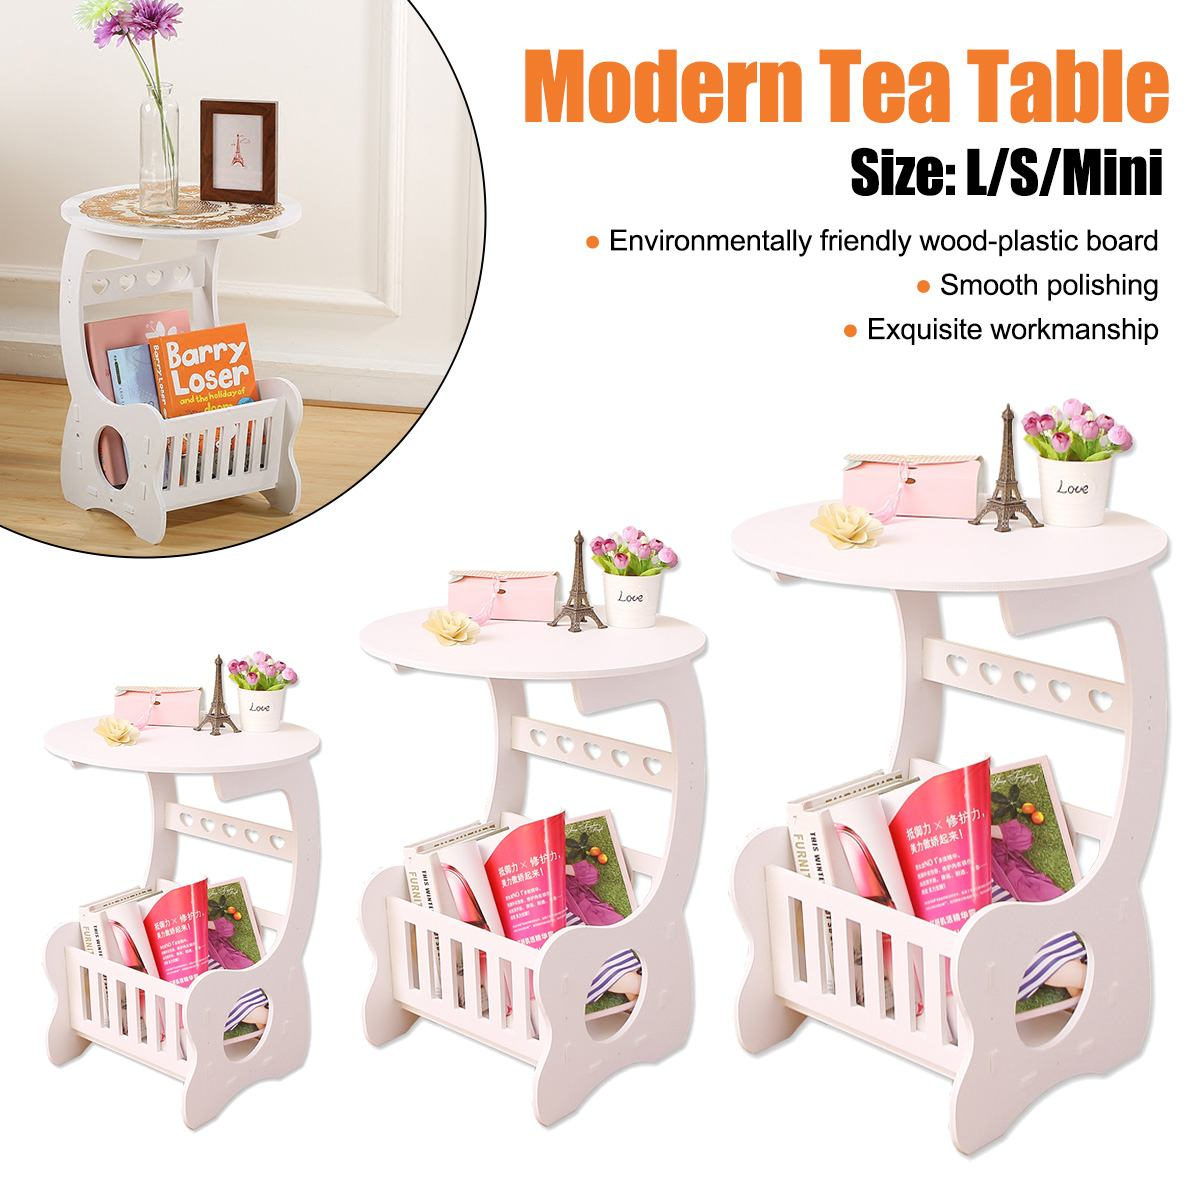 Modern Coffee End Side Table L/S/Mini Size For Home Living Room Tea Desk WPC Material Two Layers Round Edge Storage Shelf